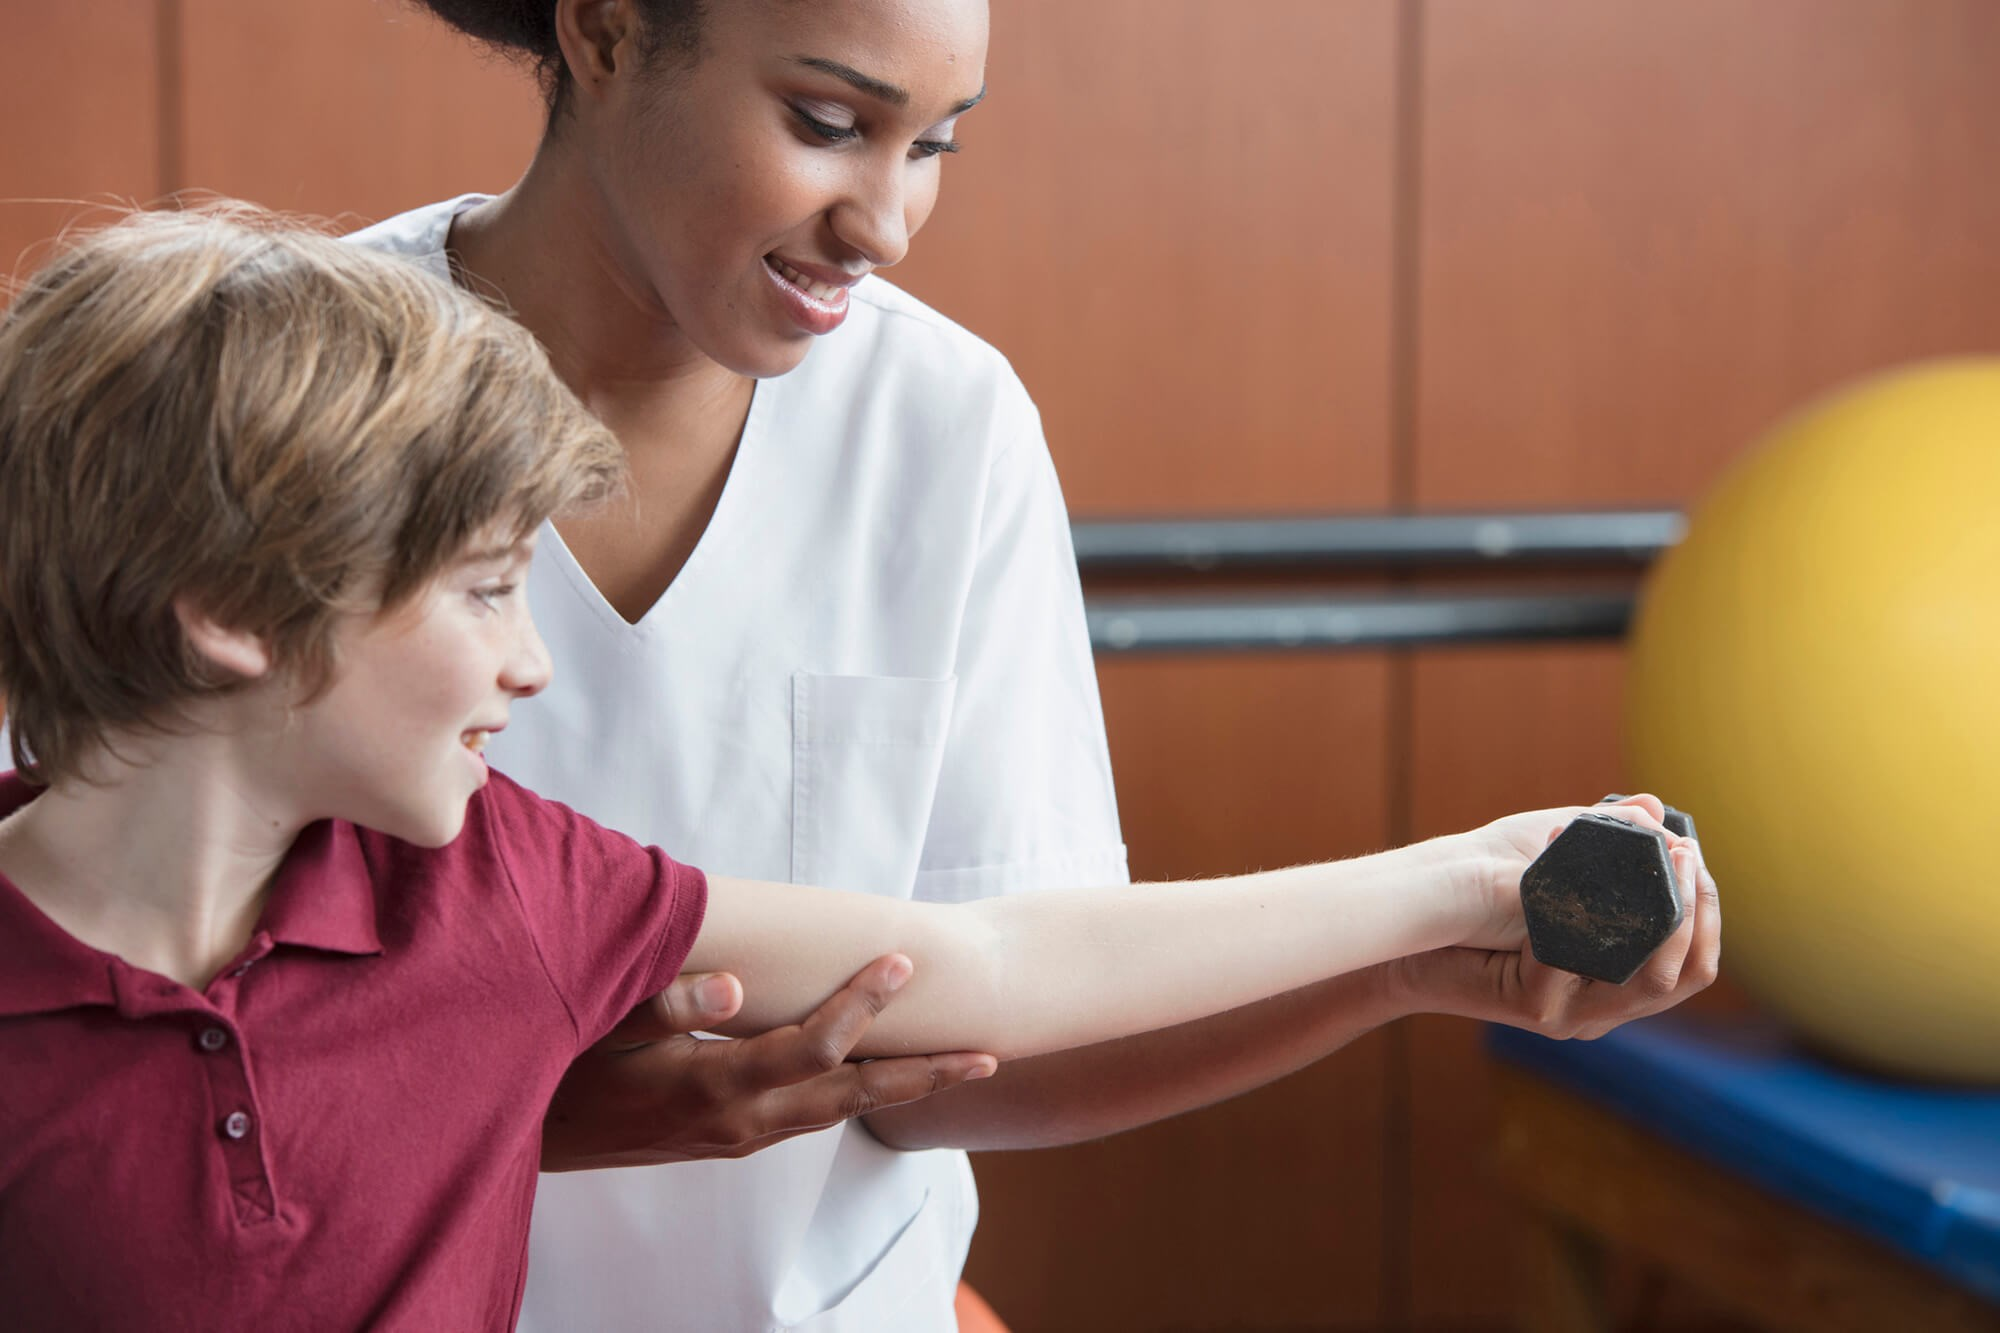 Disease- and treatment-related factors can affect the ability of children with cancer to participate in physical activities.